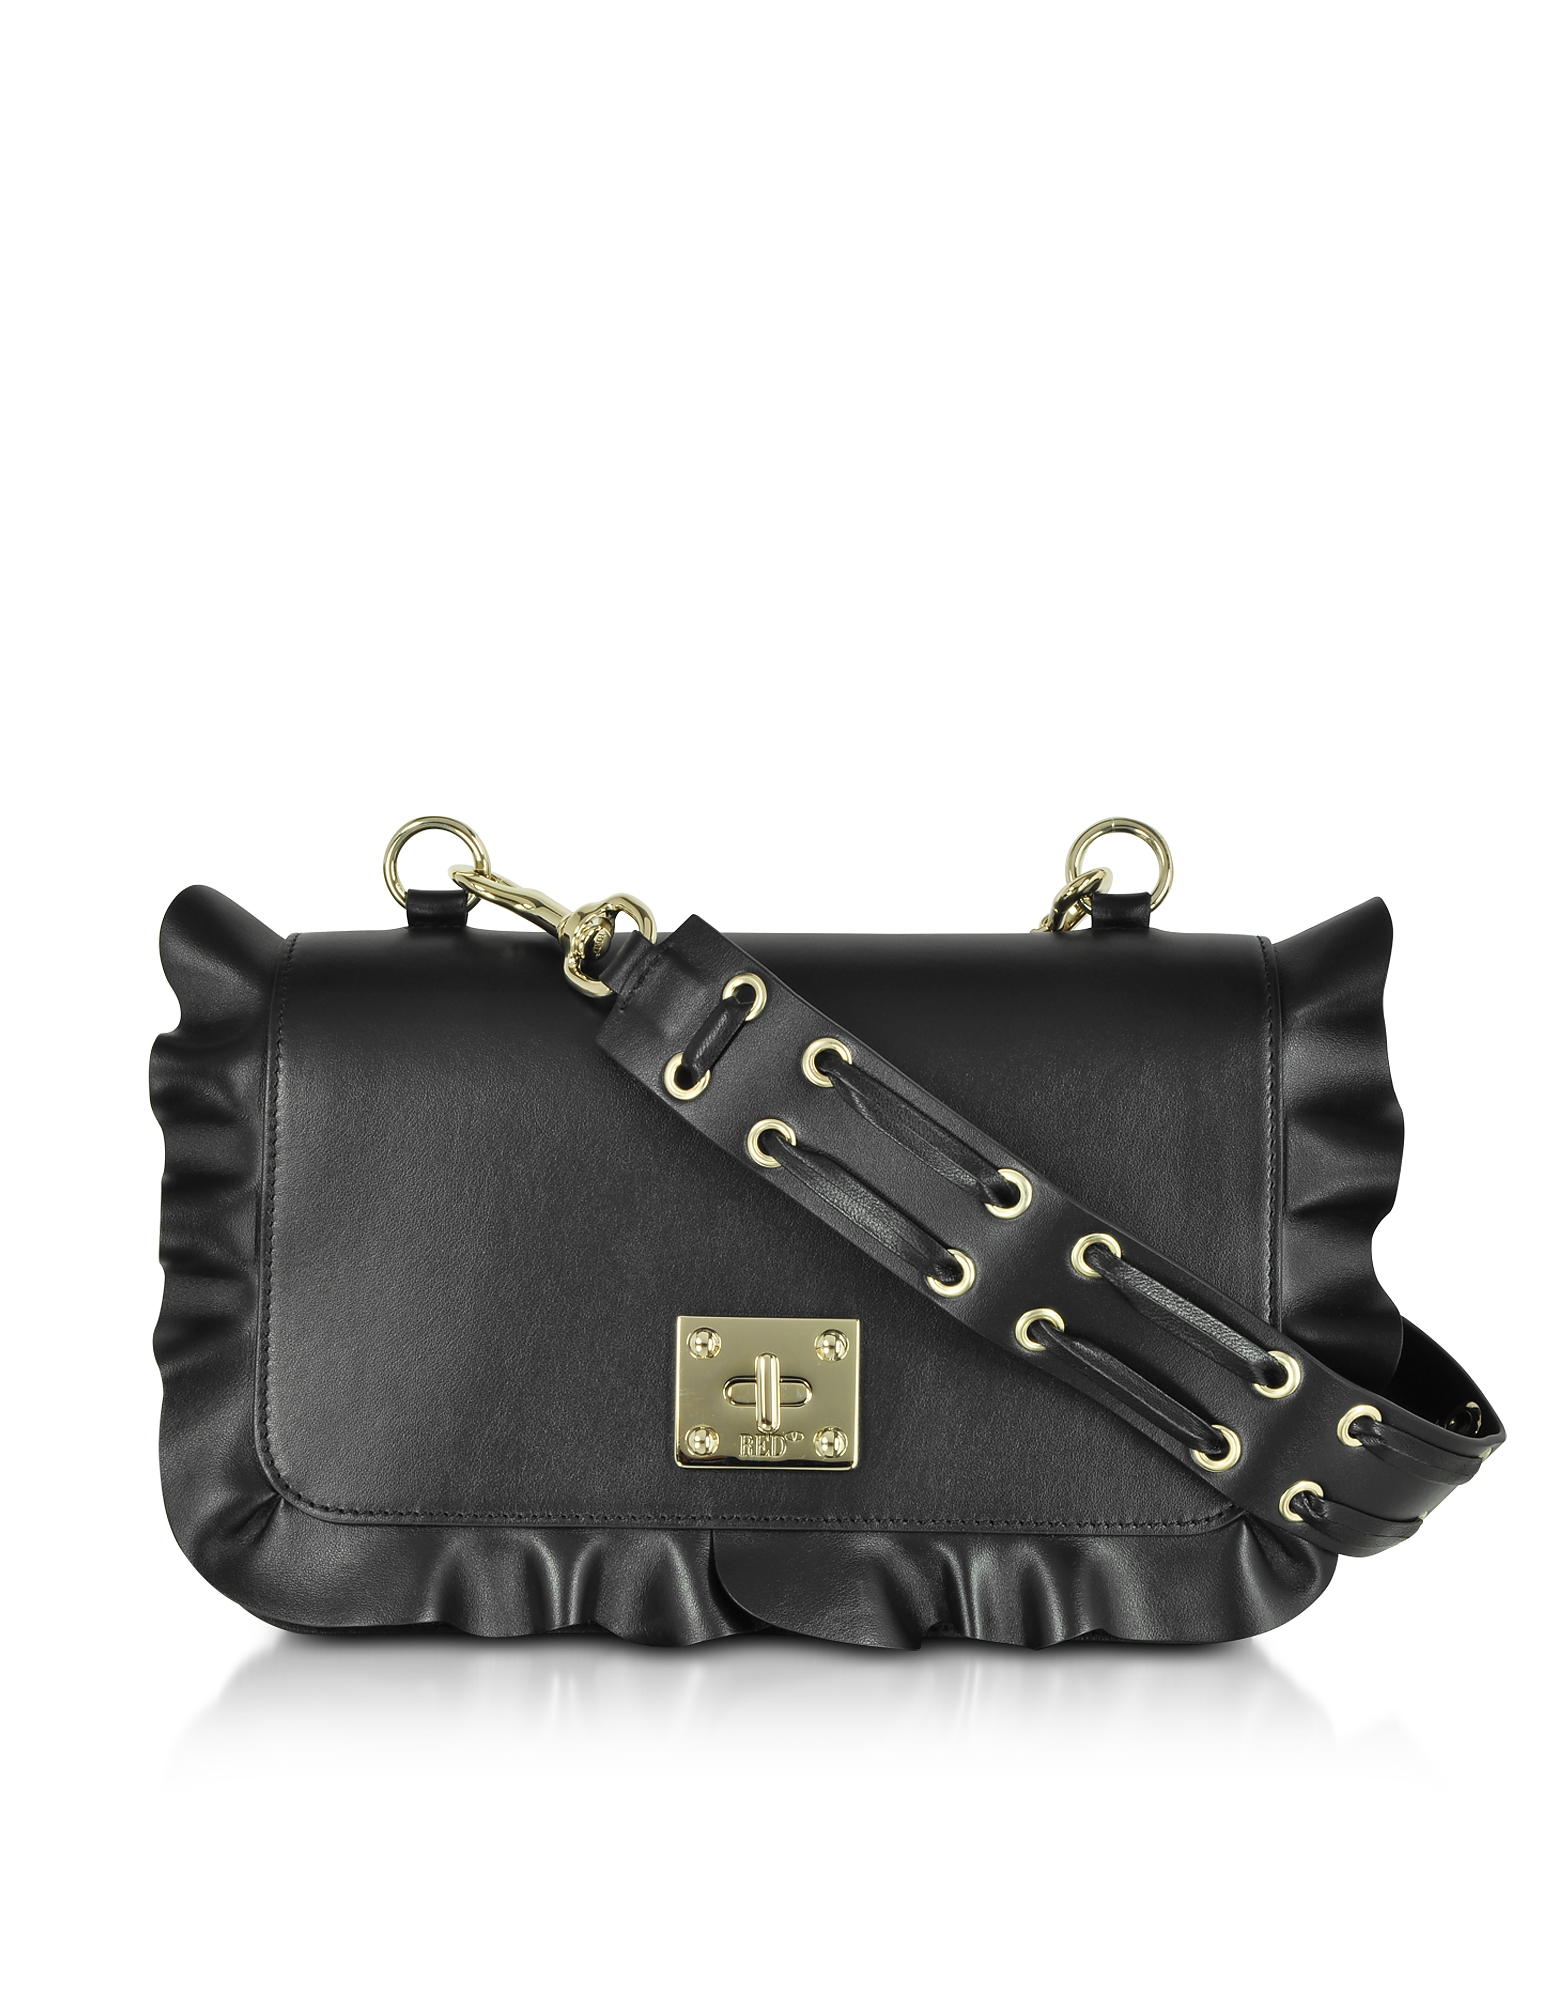 RED Valentino Handbags, Rock Ruffles Shoulder Bag